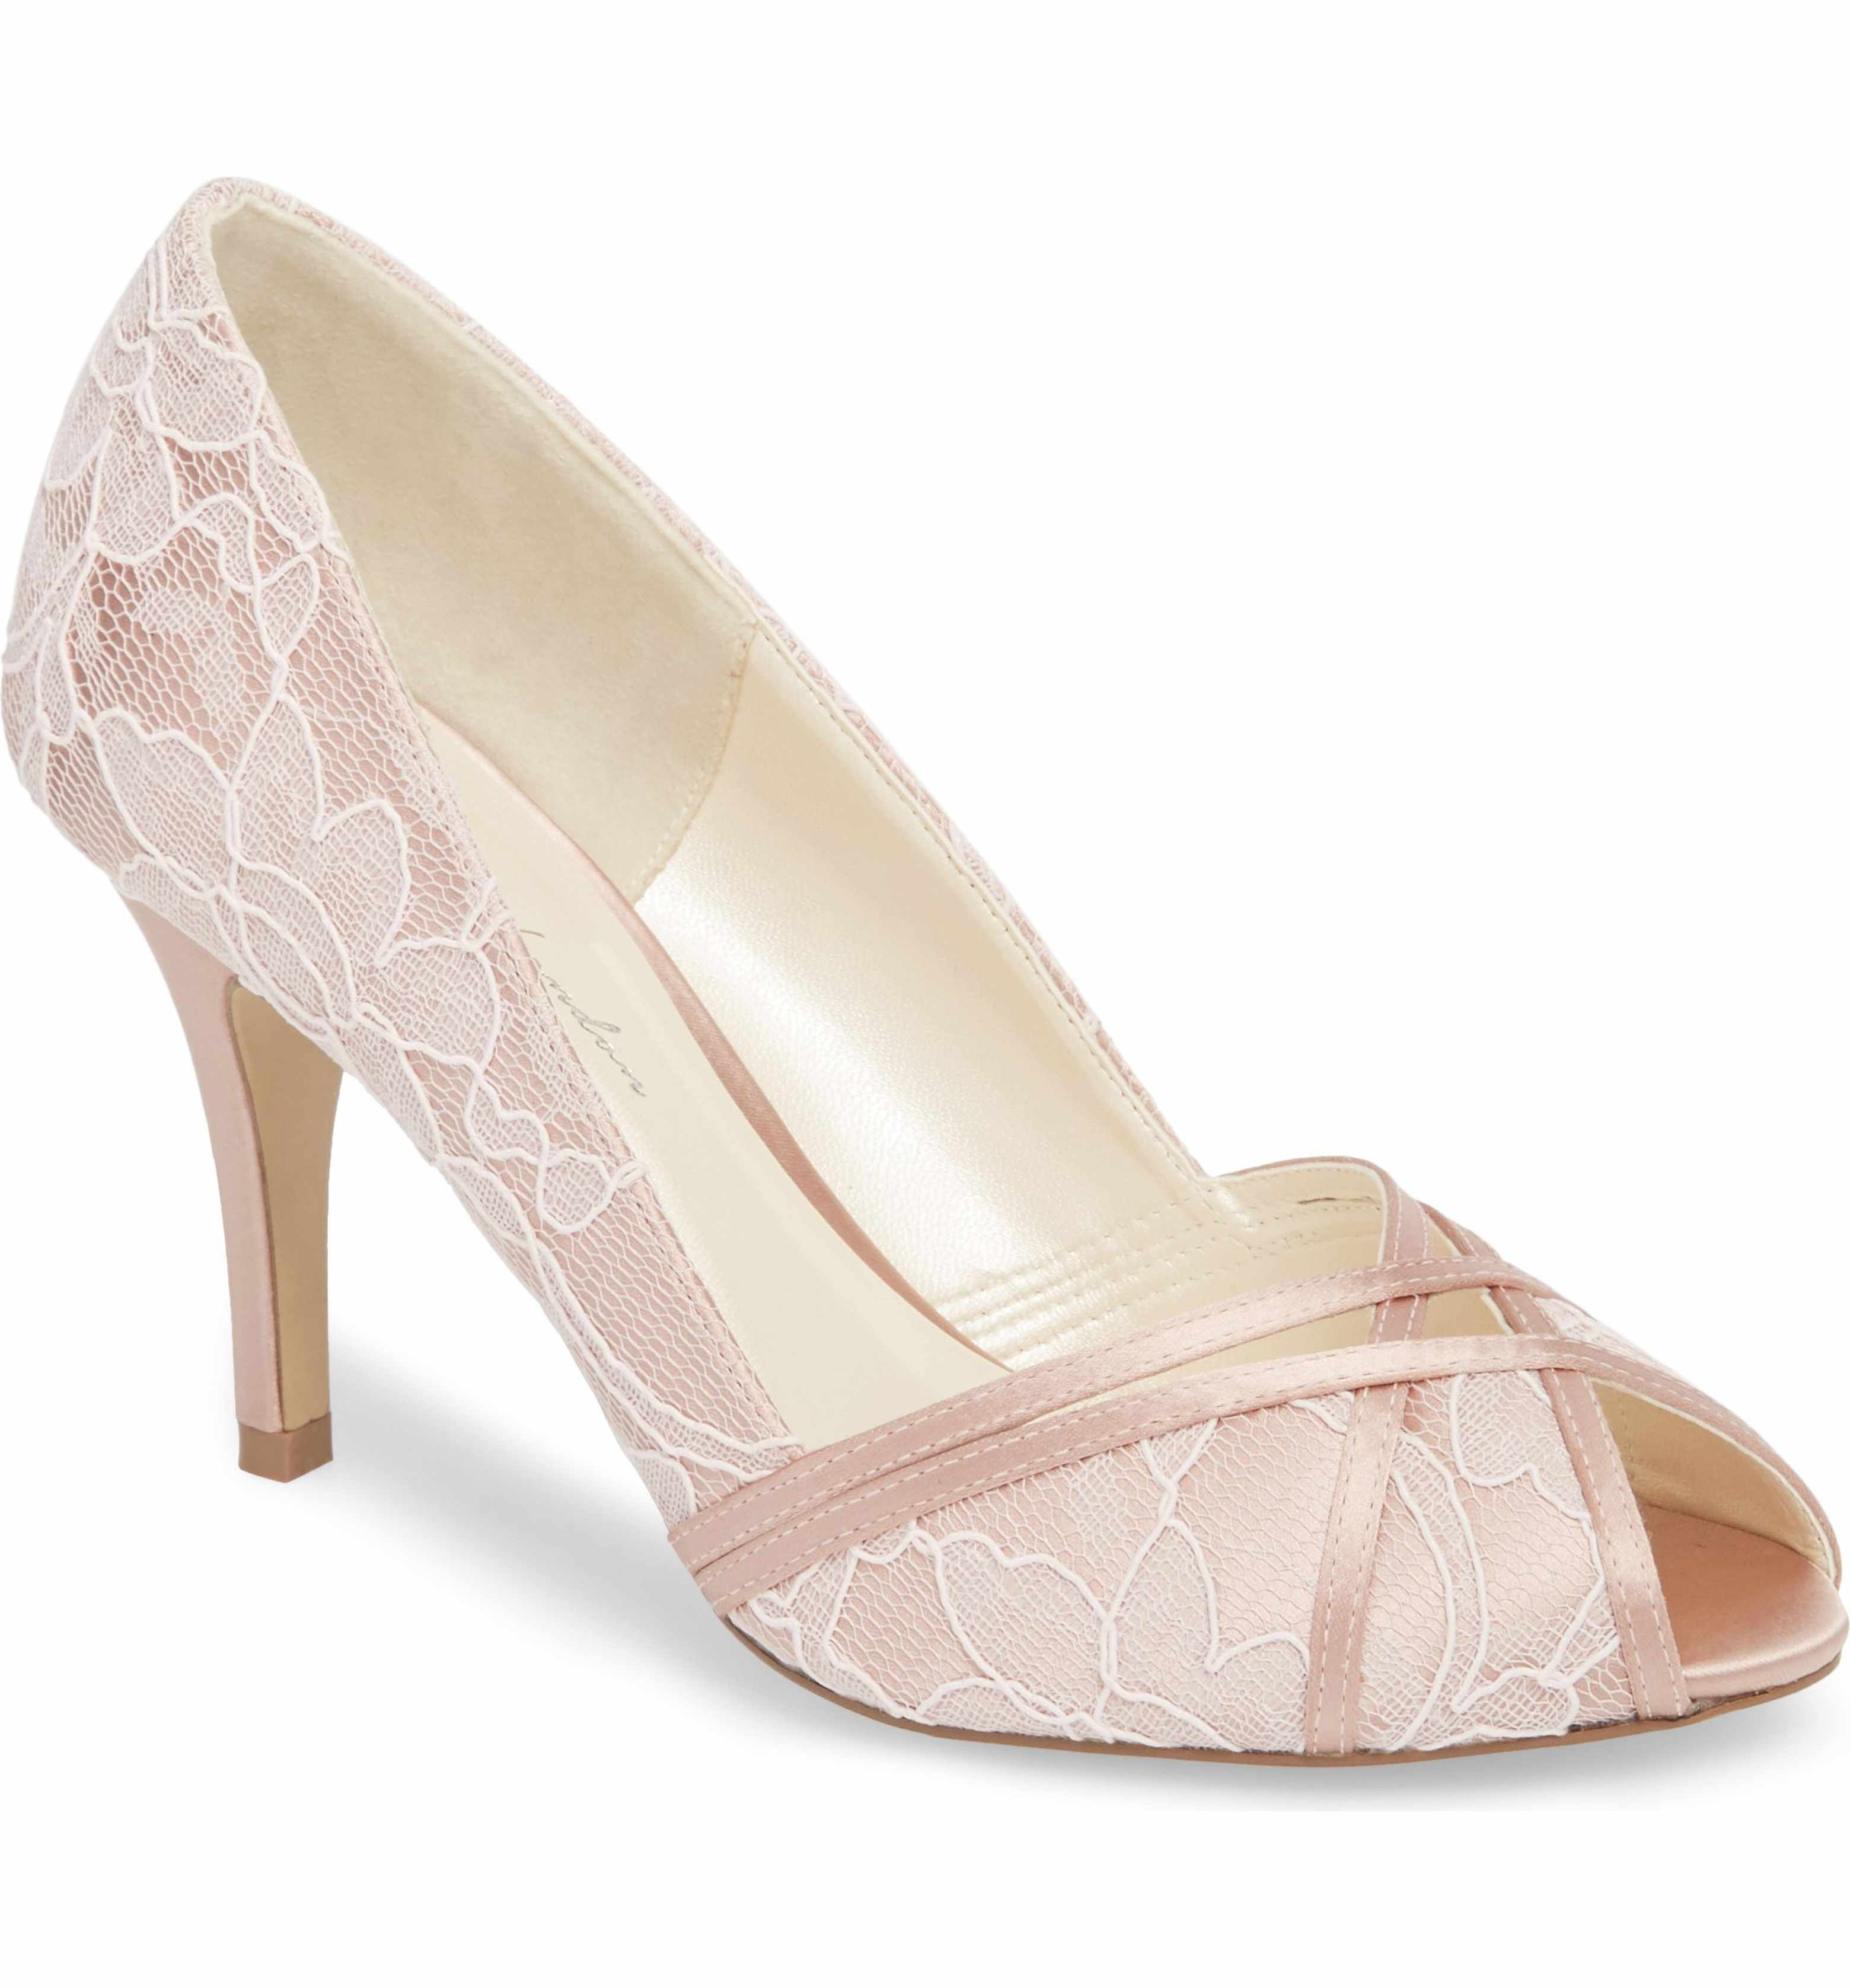 Paradox London Pink Women's Cherie Embroidered Peep Toe Pump mS7ta